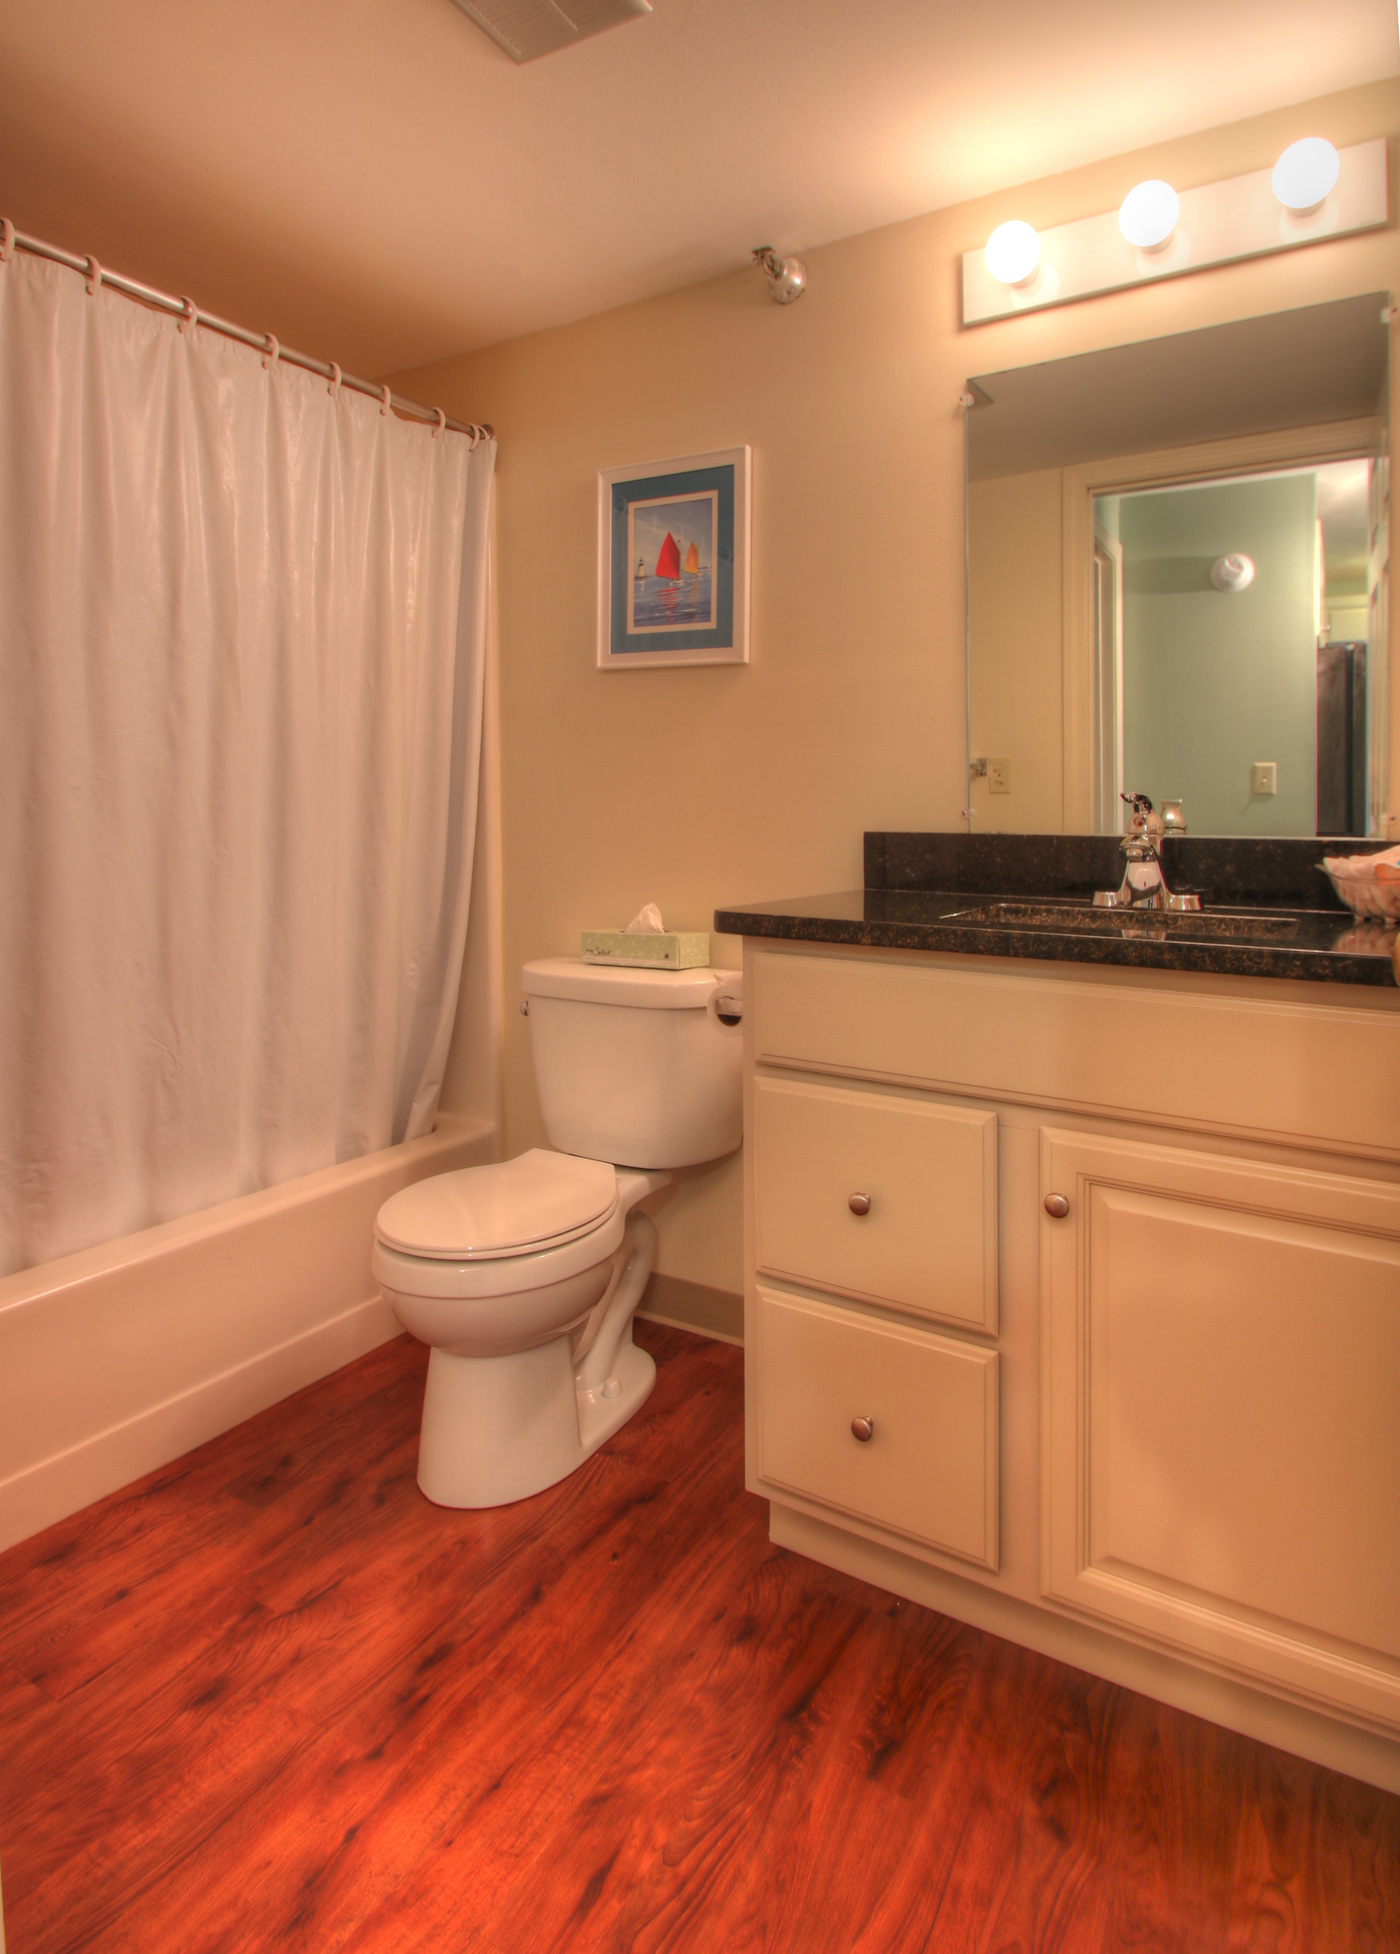 2 Bedroom Suites In Savannah Ga: Misty Harbor Resort In Wells